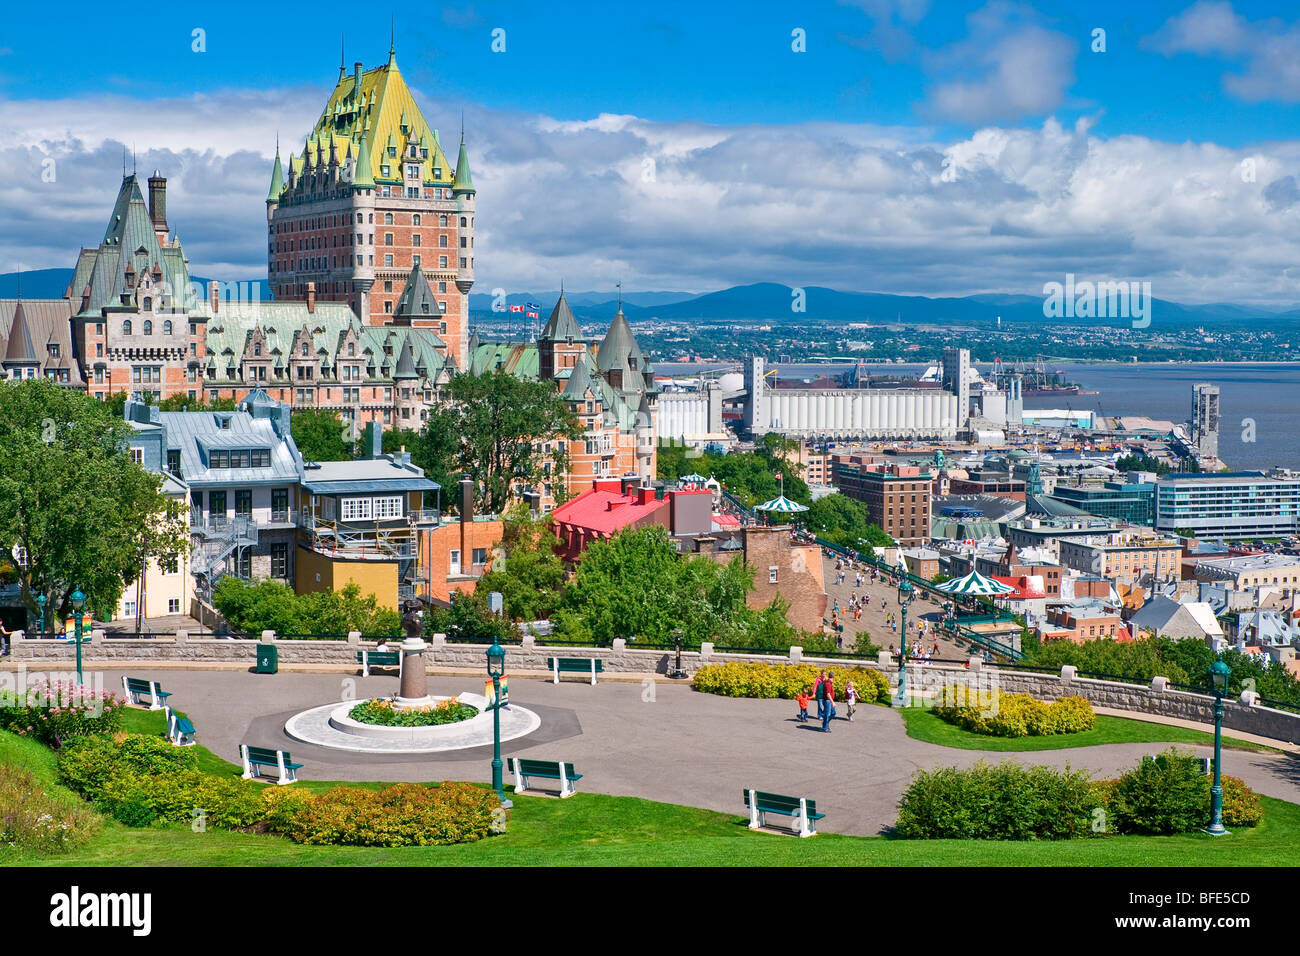 cityscape of old quebec city with chateau frontenac in the. Black Bedroom Furniture Sets. Home Design Ideas